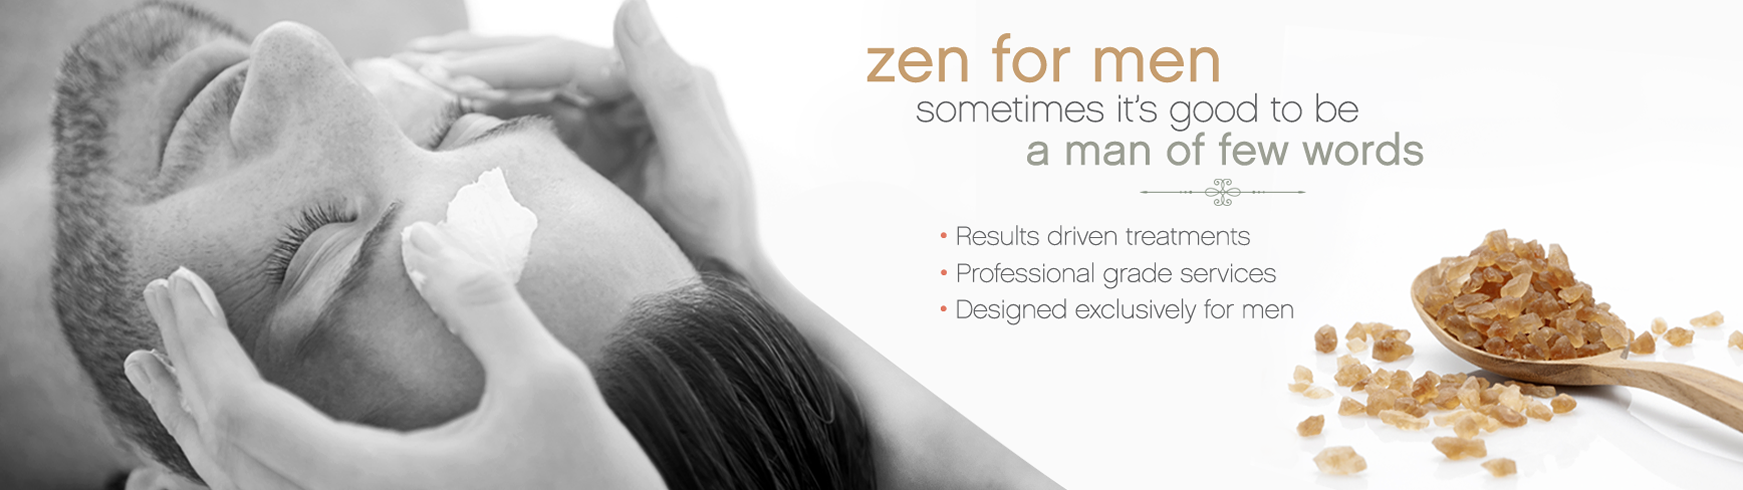 Zen for Men Results Driven Treatments - La Bella Spa